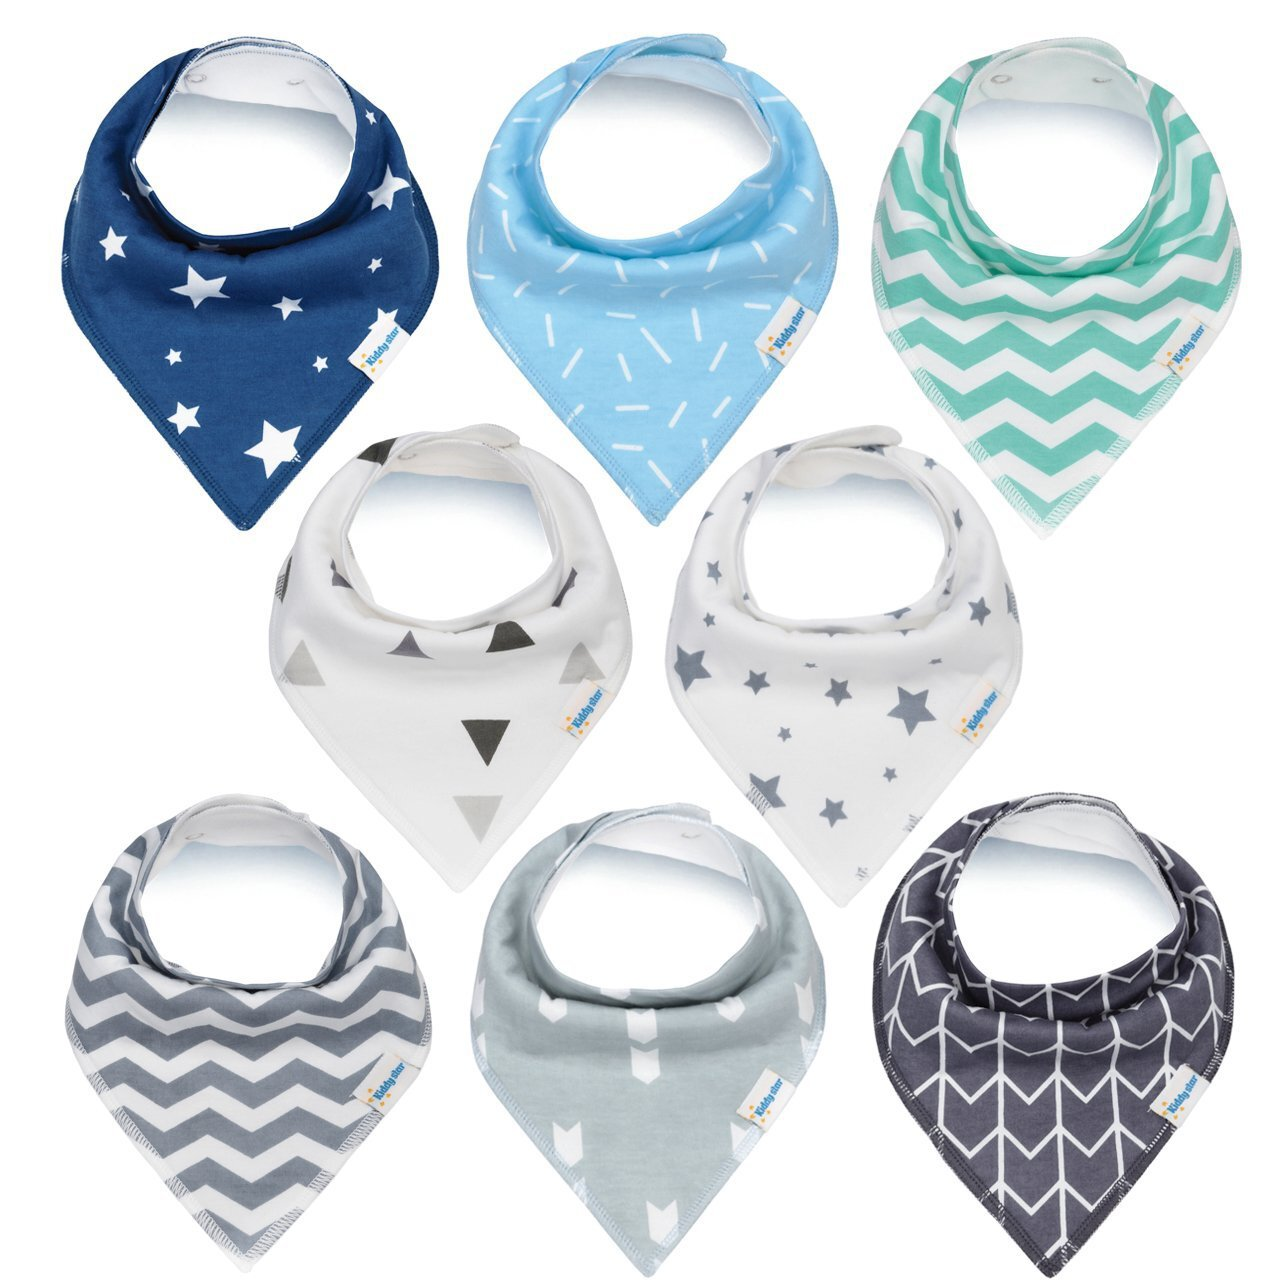 Gift ideas and cool products for baby boys